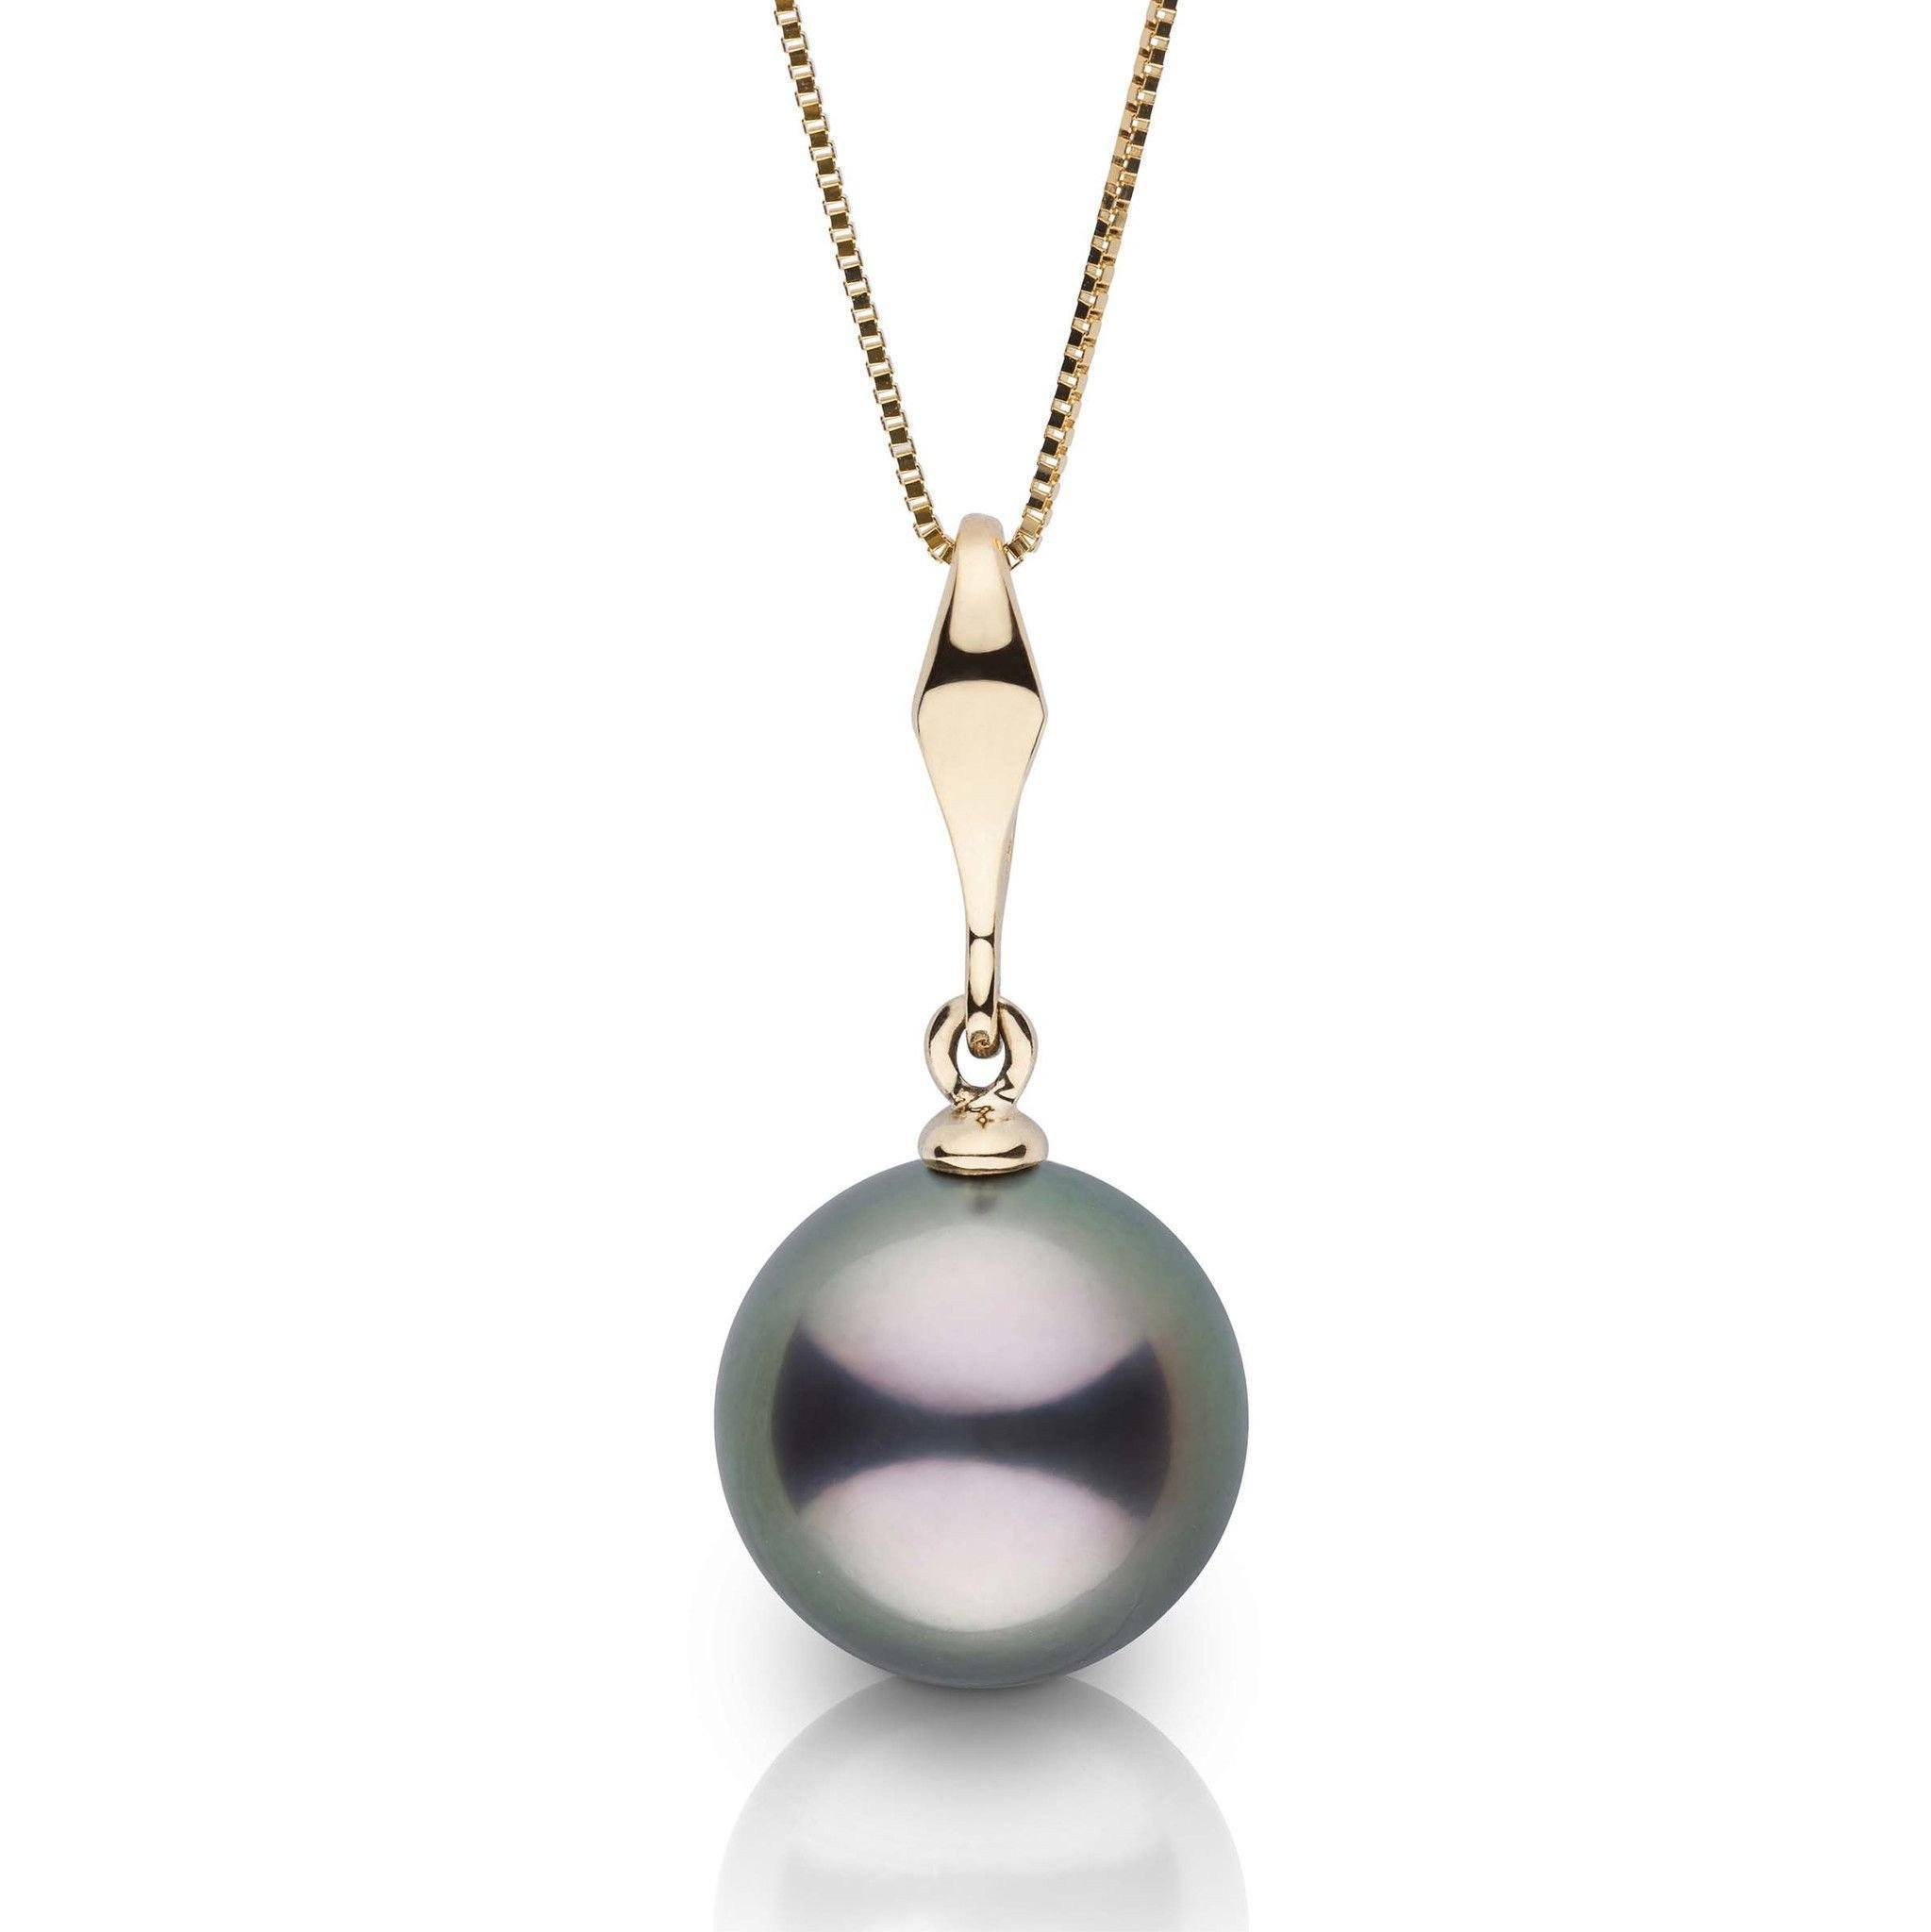 Essential Collection 11.0-12.0 mm Tahitian Pearl Pendant